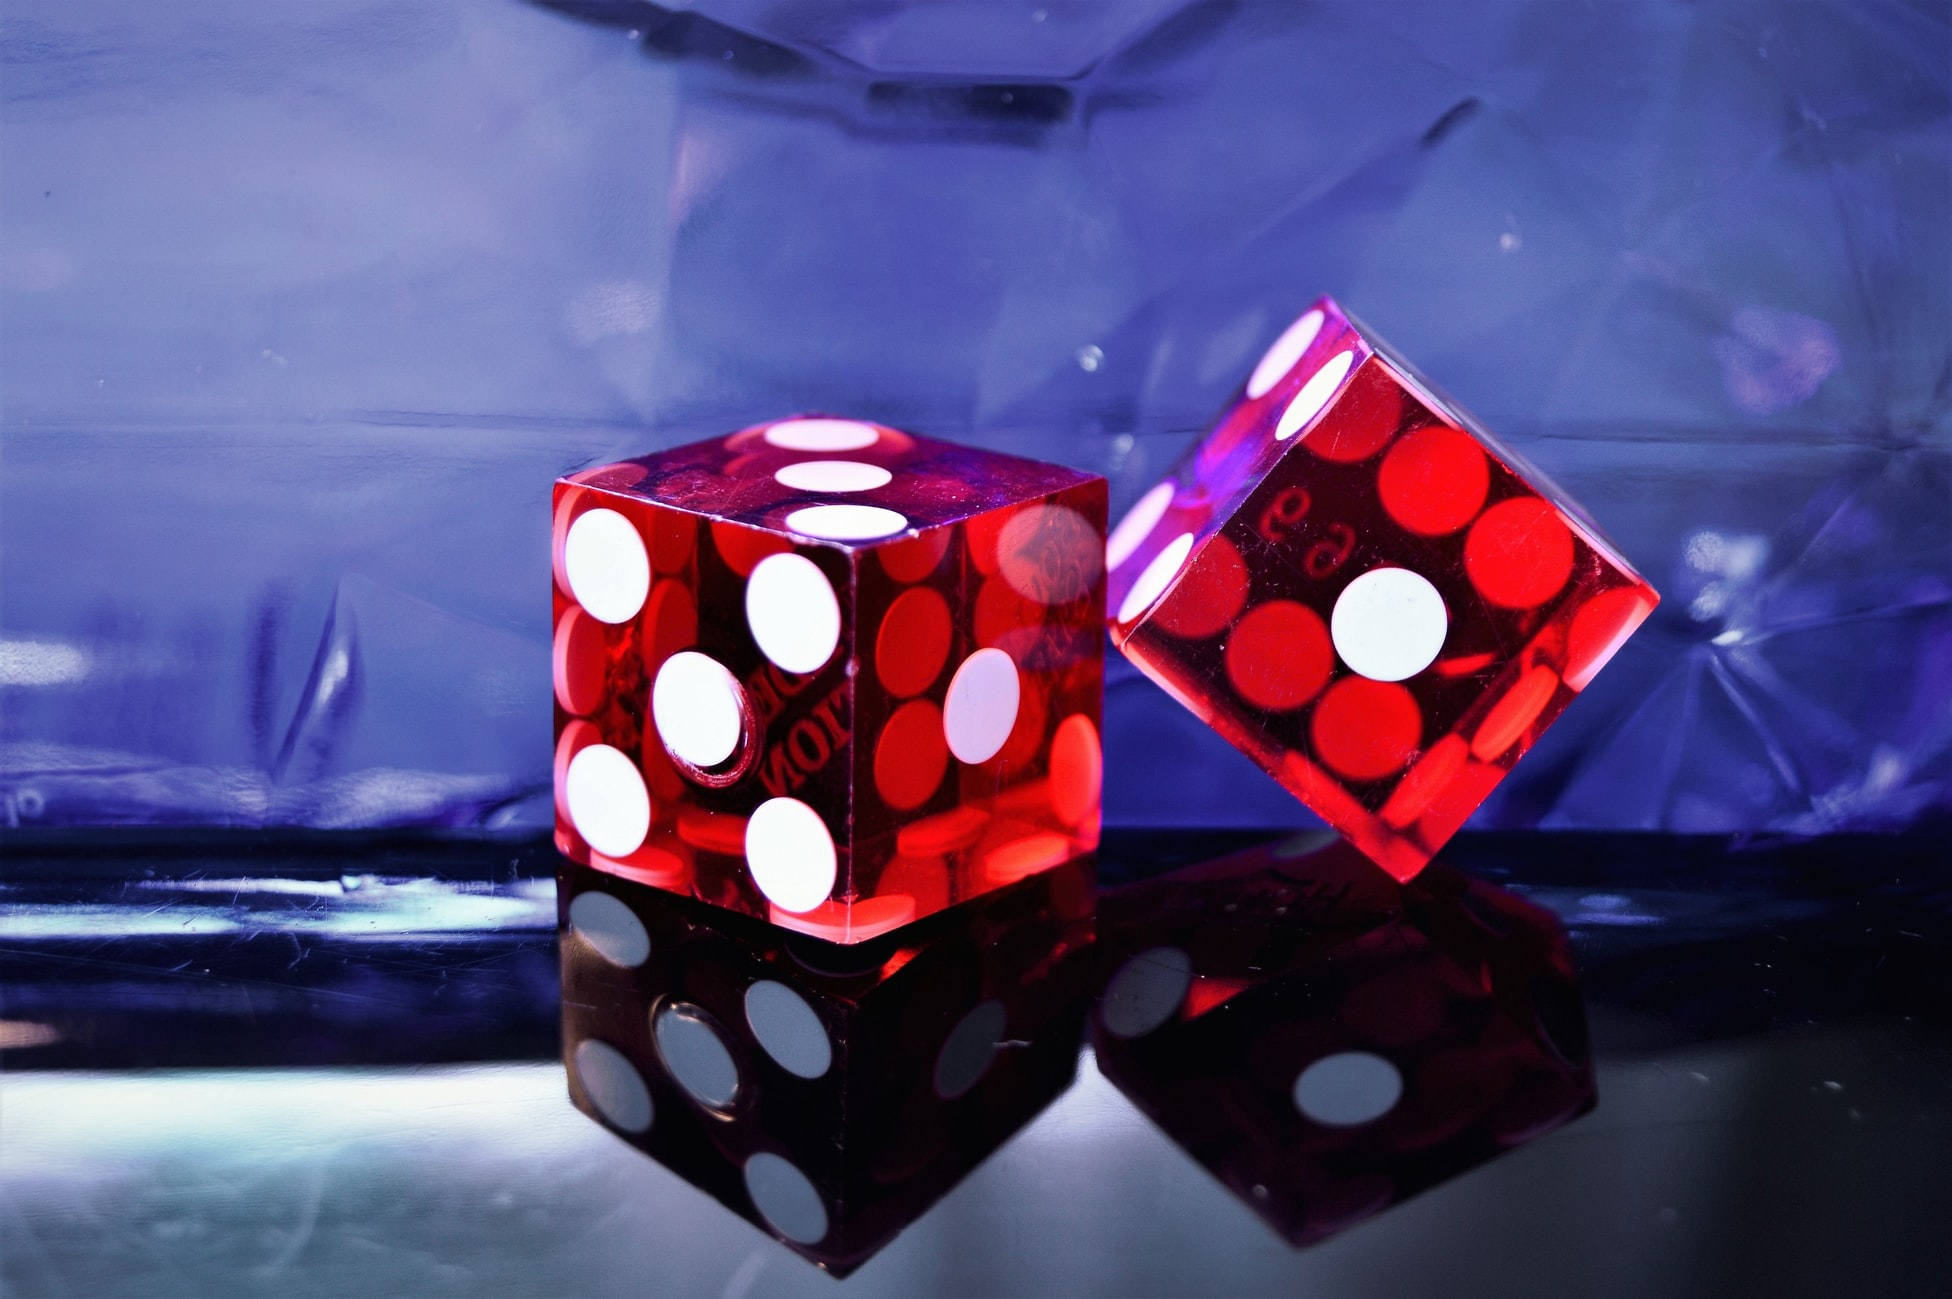 Red Dice Closeup Photography von Jonathan Petersson